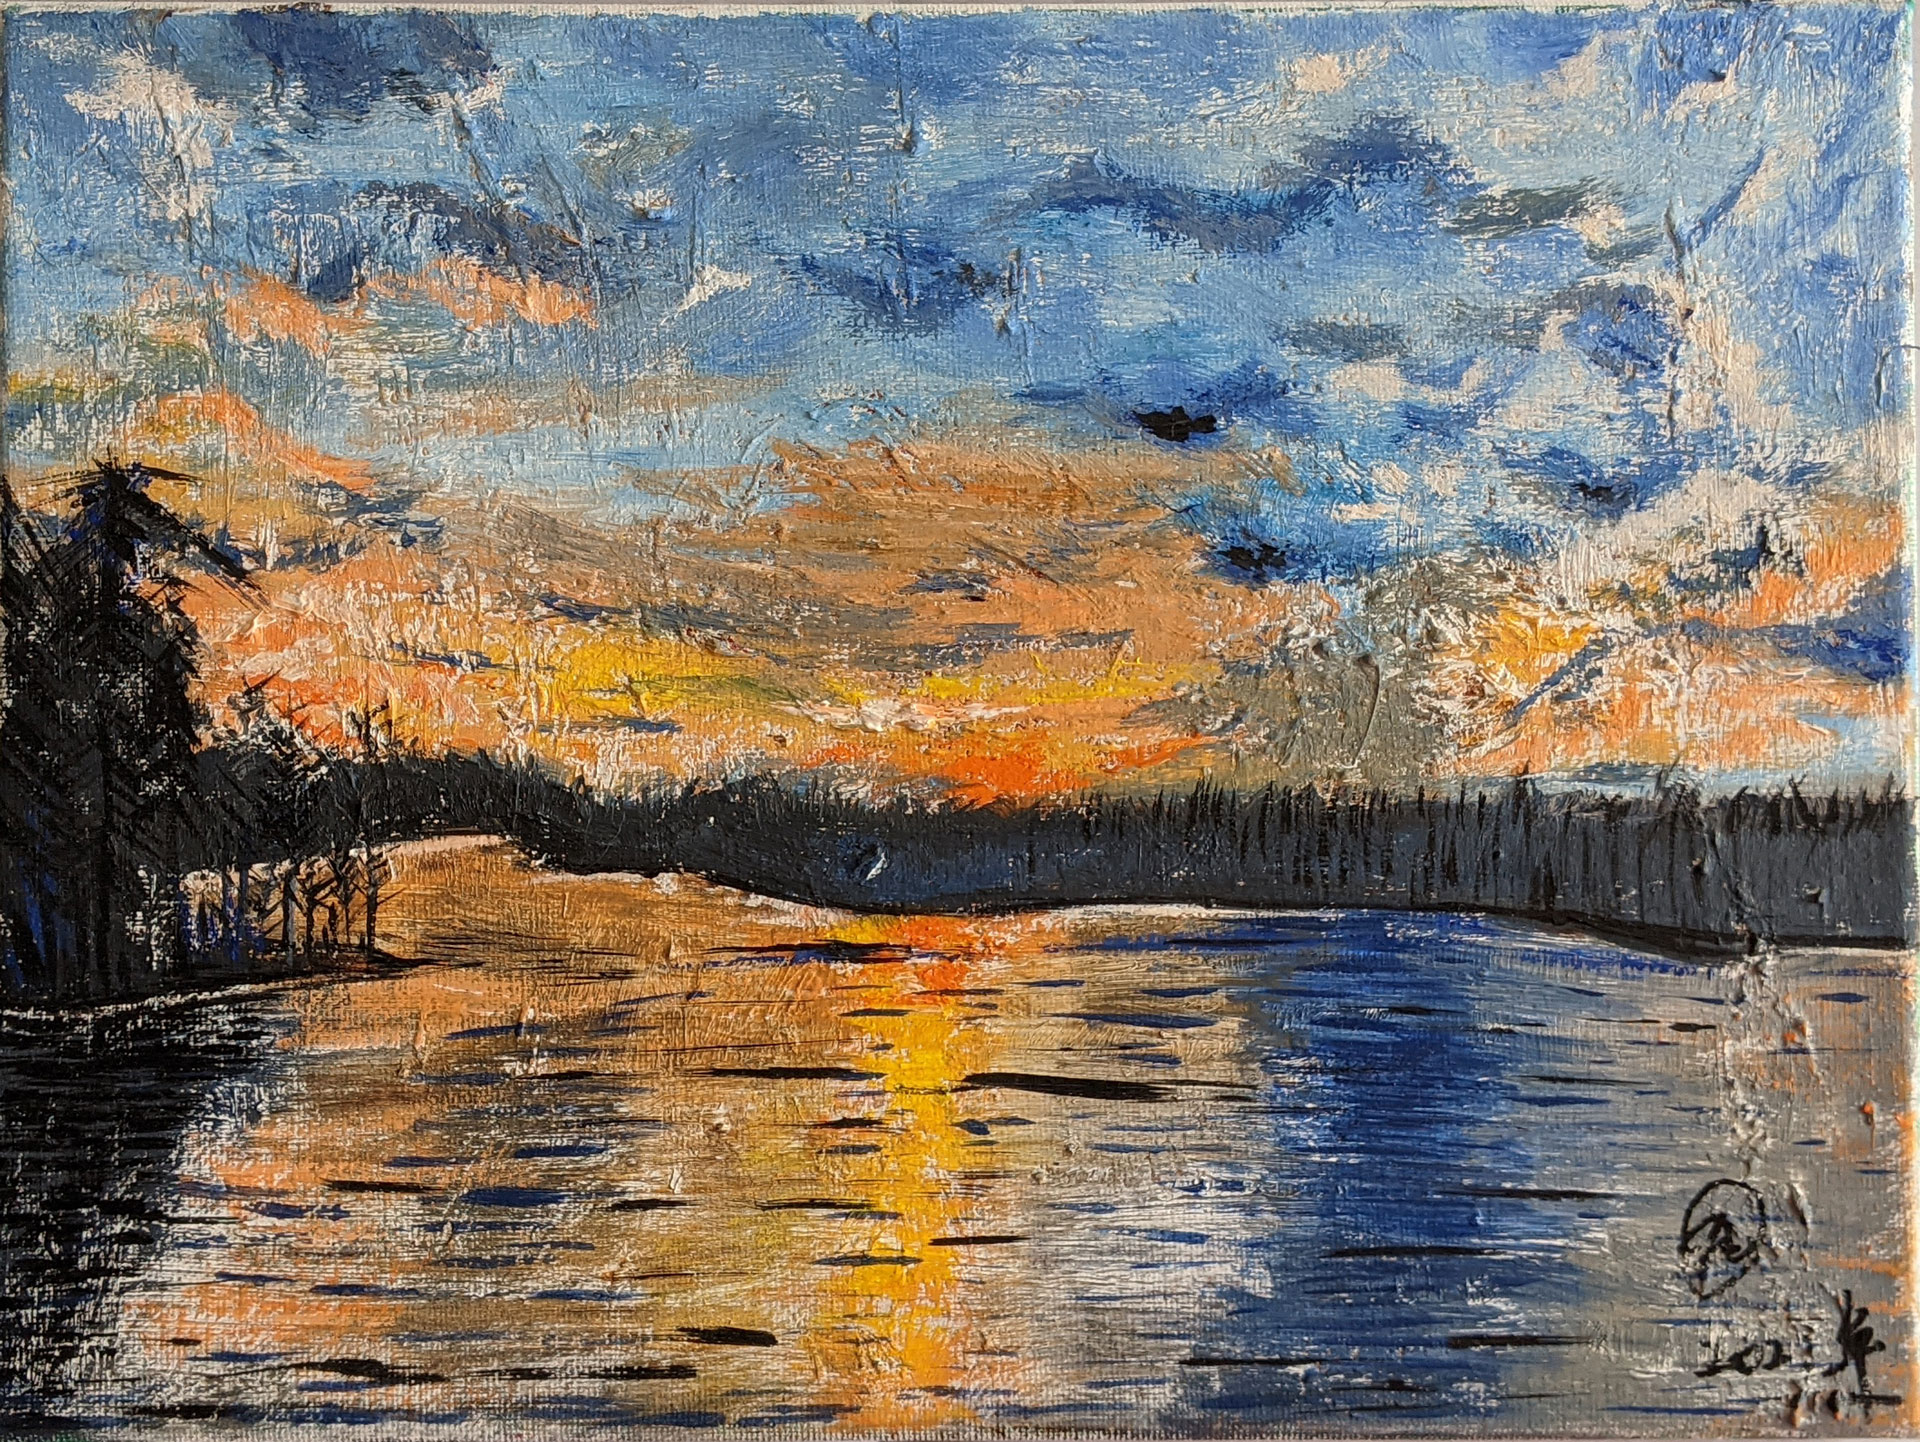 Ashland State Park oil painting by Fan Stanbrough